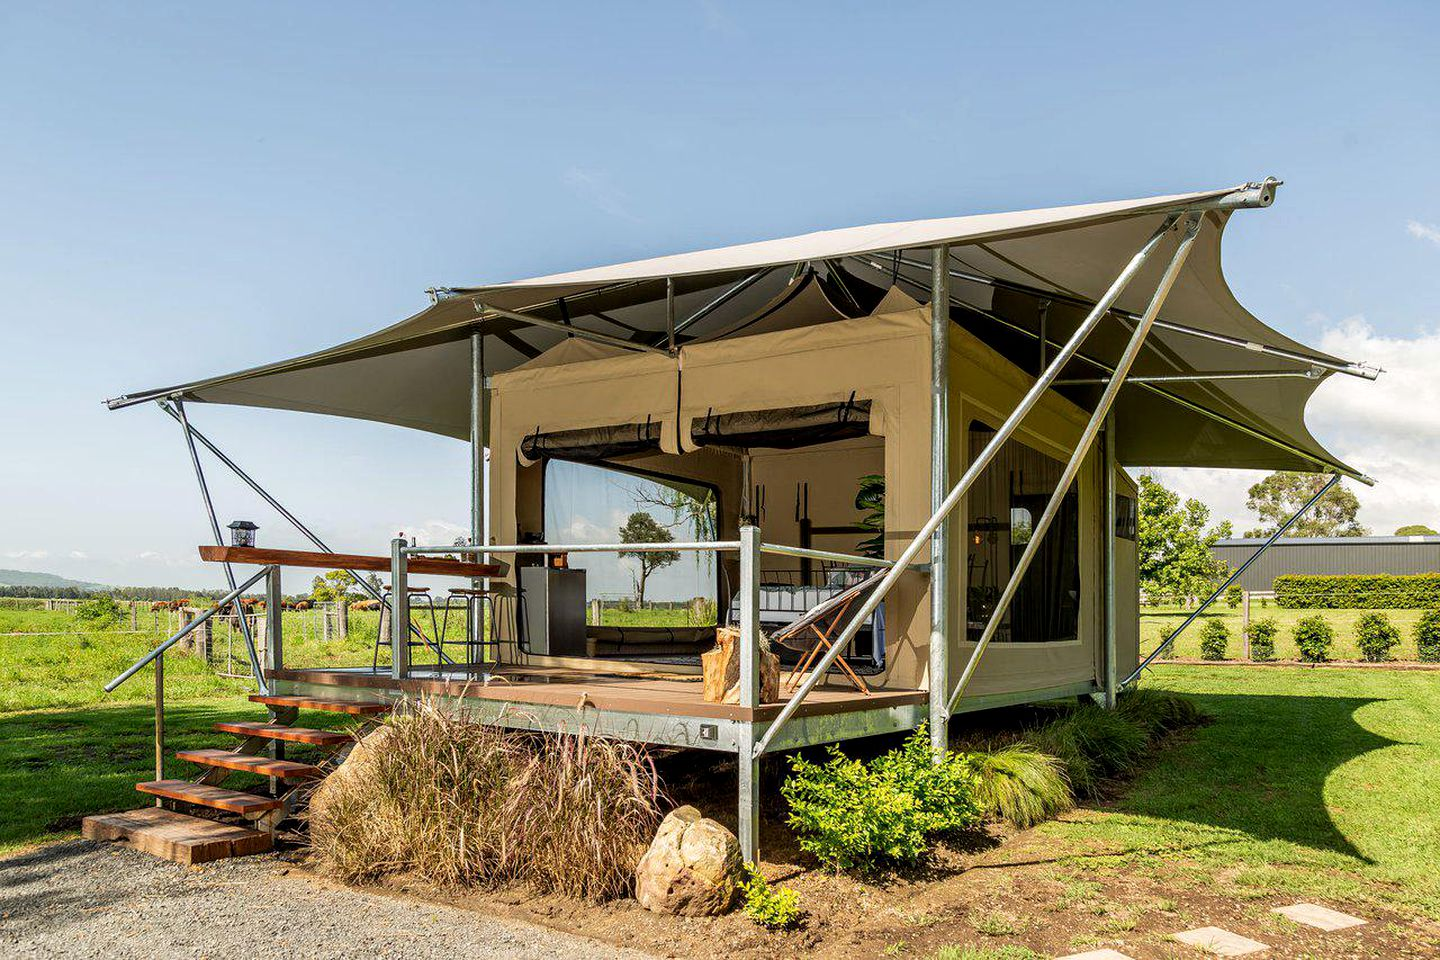 Tented Cabins (Berry, New South Wales, Australia)